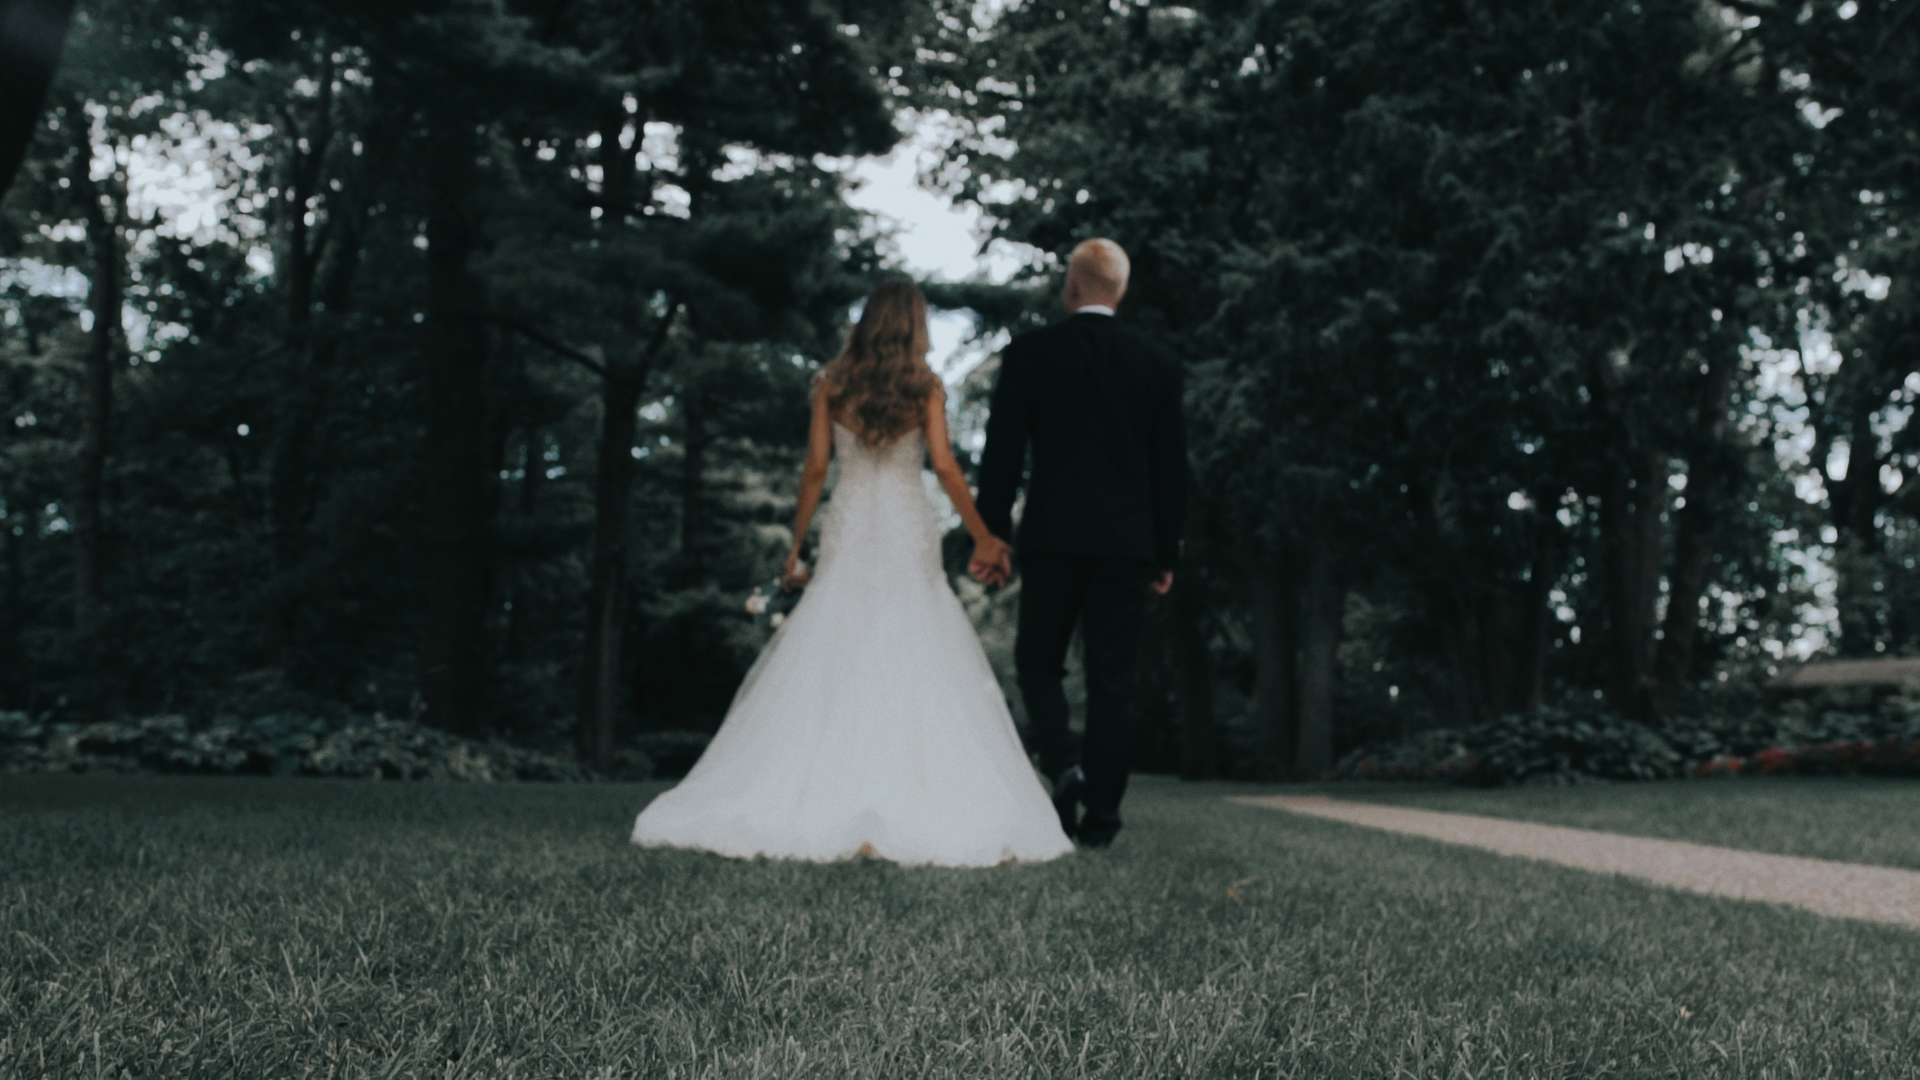 Brenna + Zach | Wedding Film